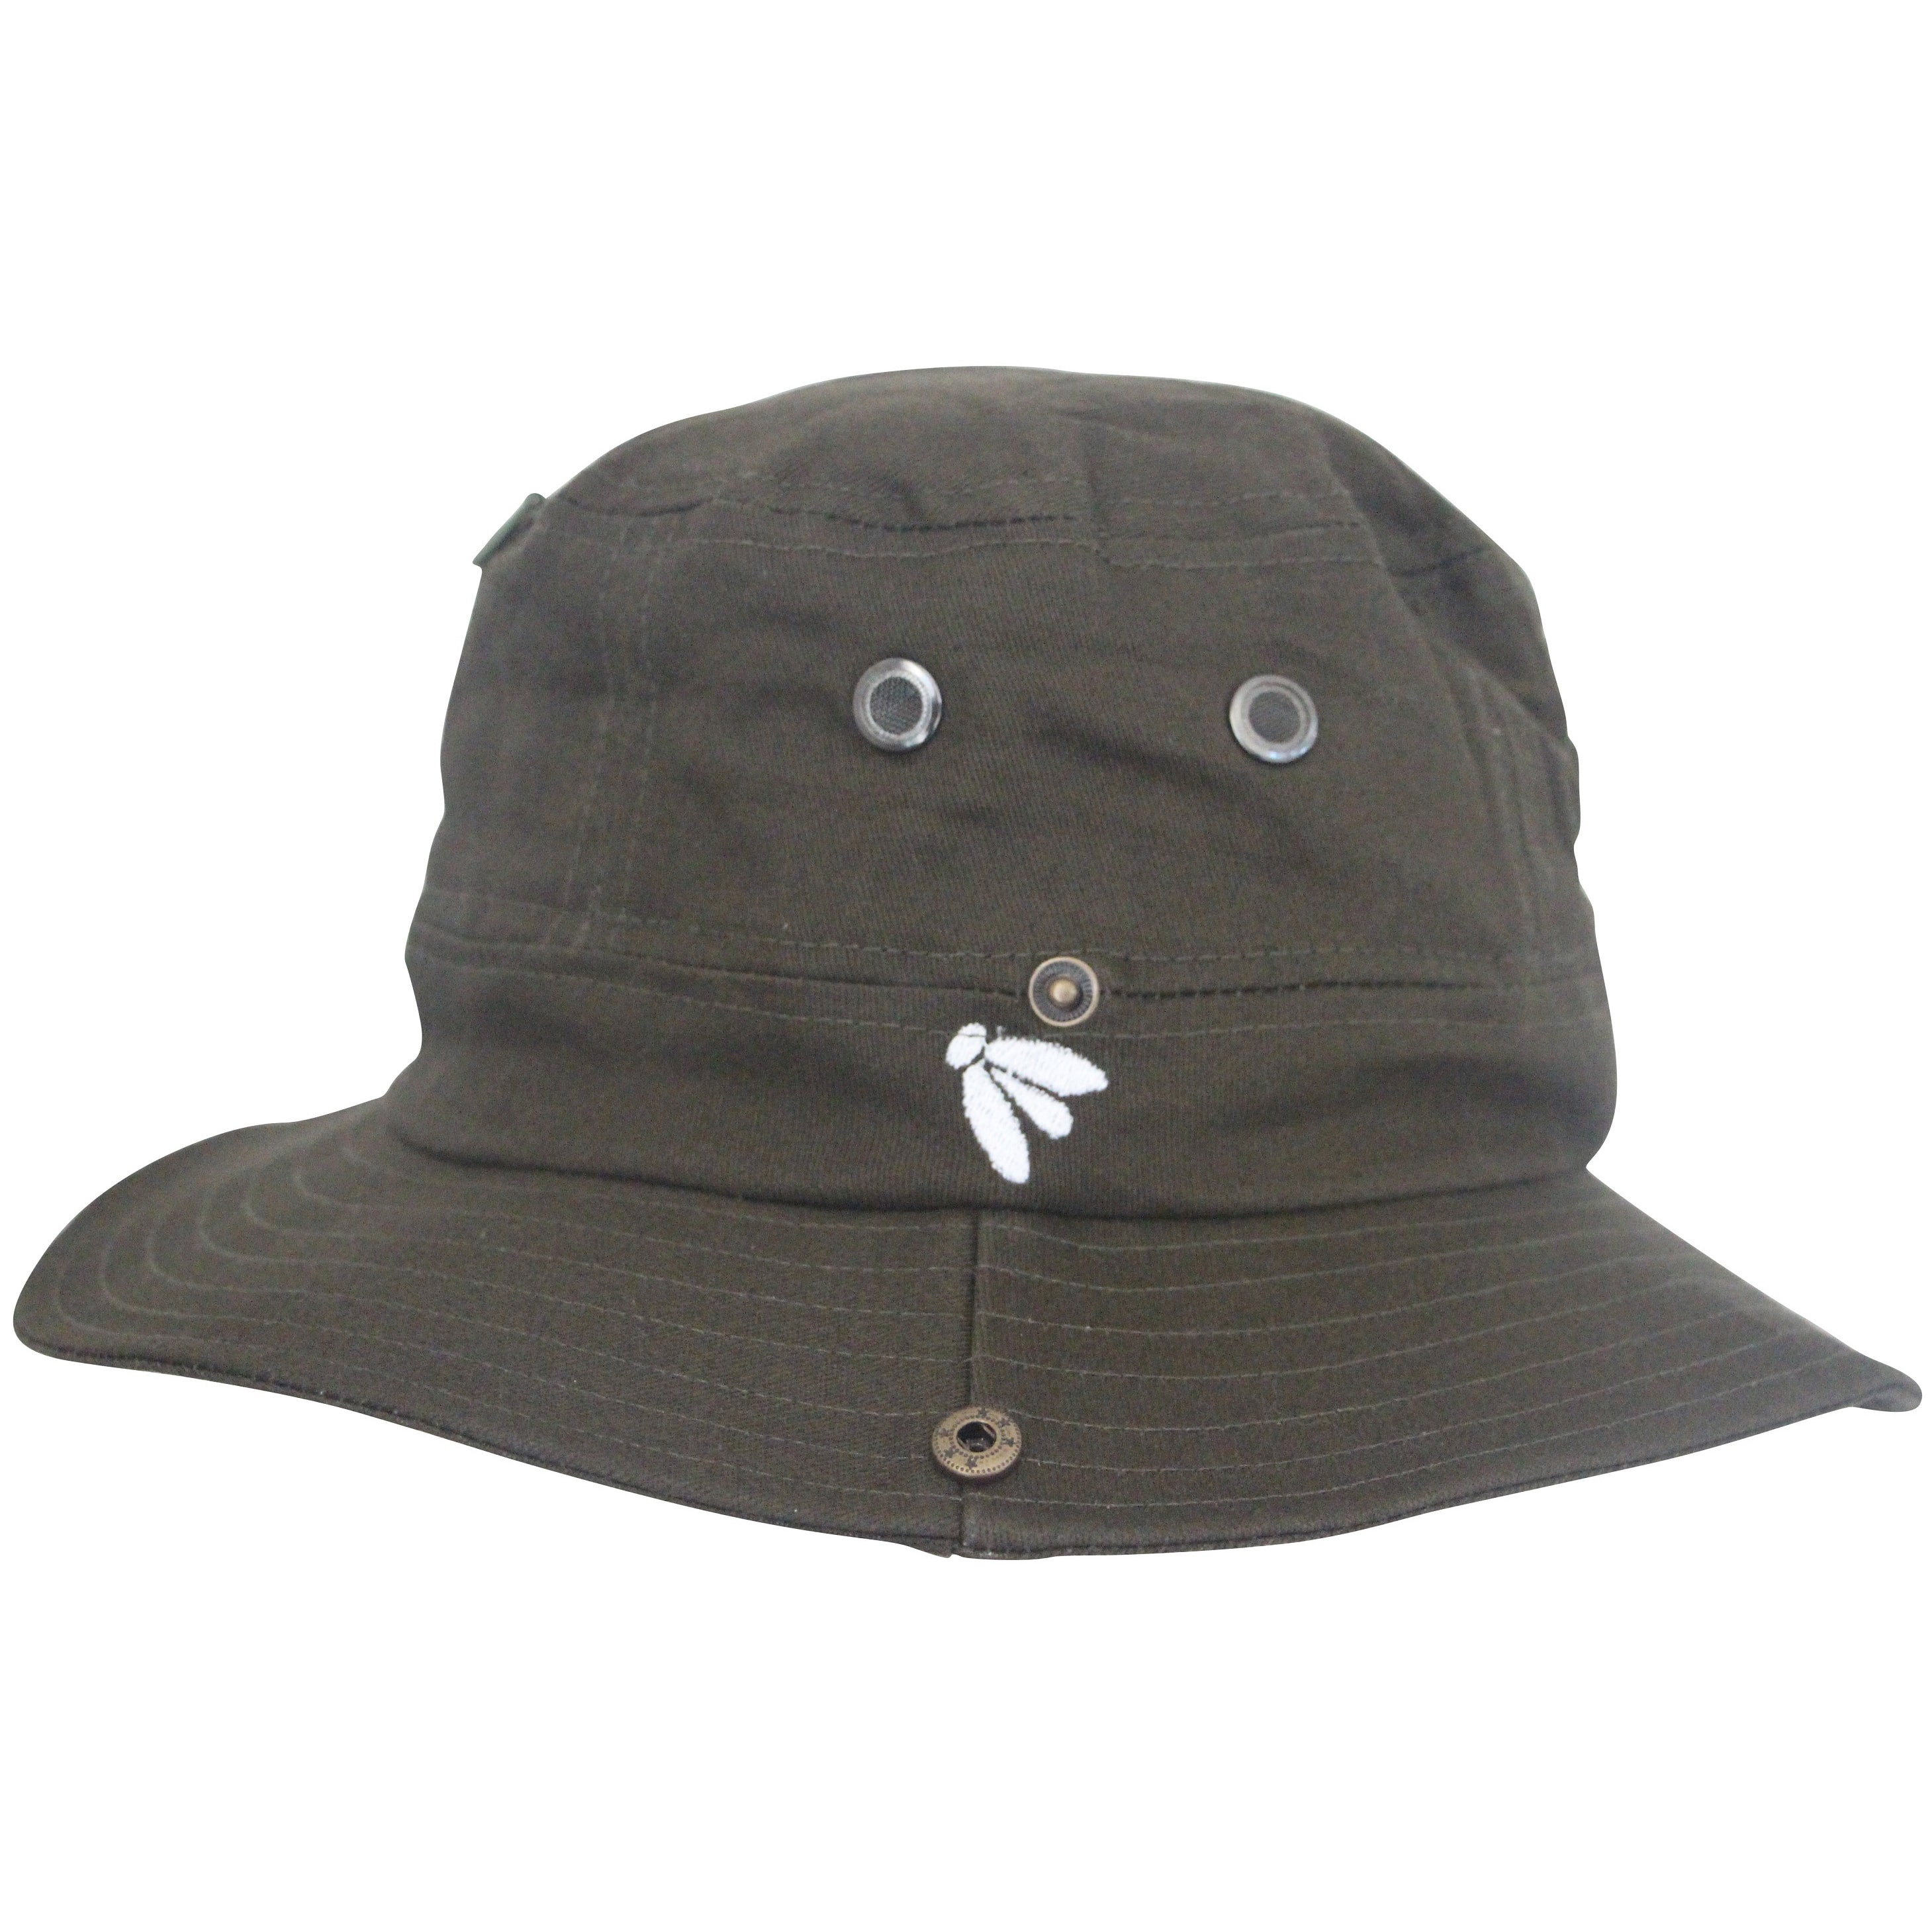 143fba893d358 Bug Hat Bughat Traditional Boonie Mosquito Net Hat Olive Outdoor Hat -  Walmart.com